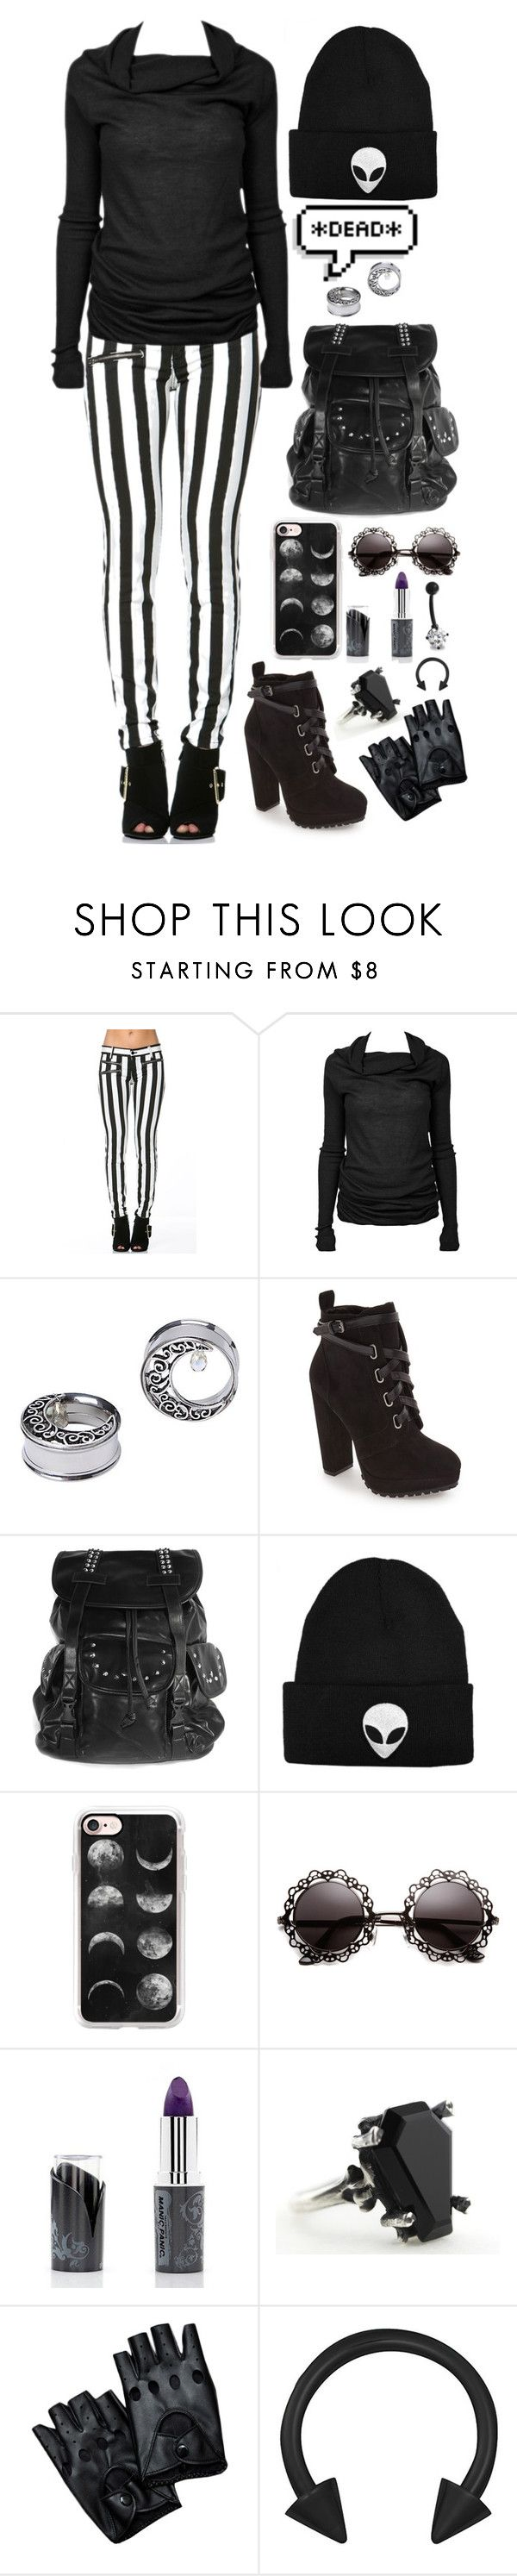 """Sweater weather is better weather"" by cherry-demon ❤ liked on Polyvore featuring Rick Owens, Daya, Casetify, Manic Panic NYC and Bling Jewelry"